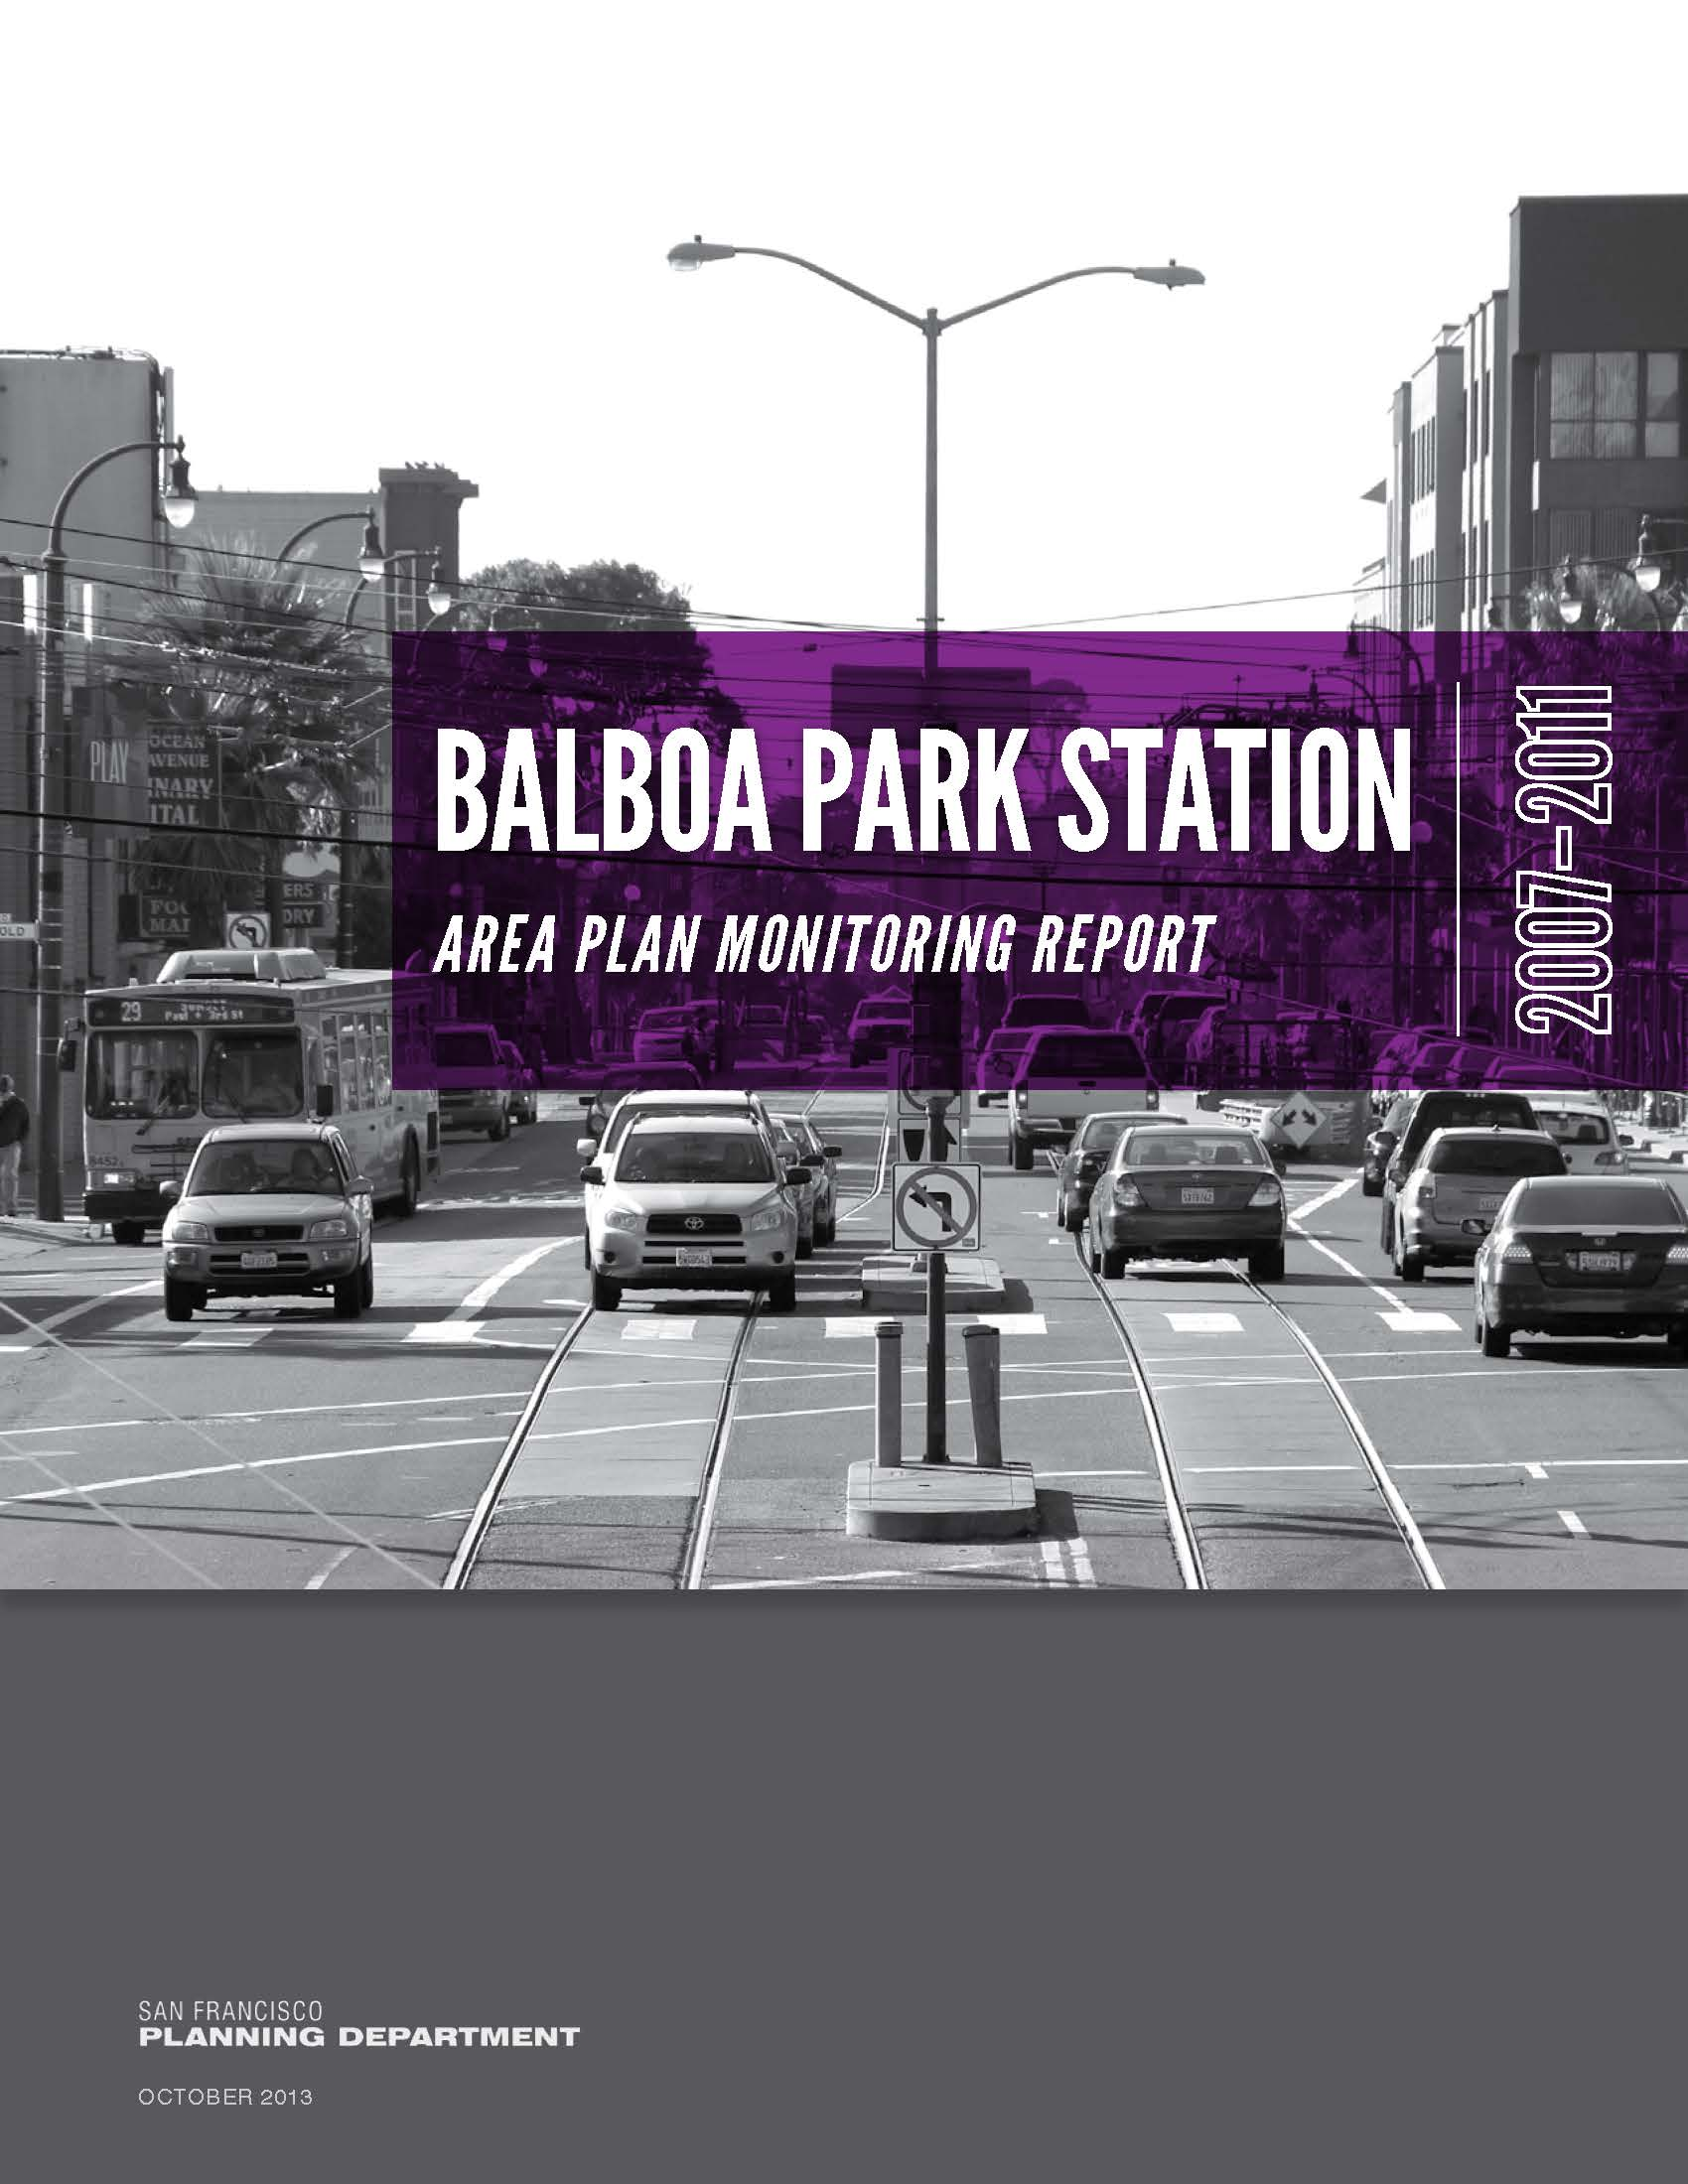 Cover Image for the Balboa Park Station Area Plan Monitoring Report